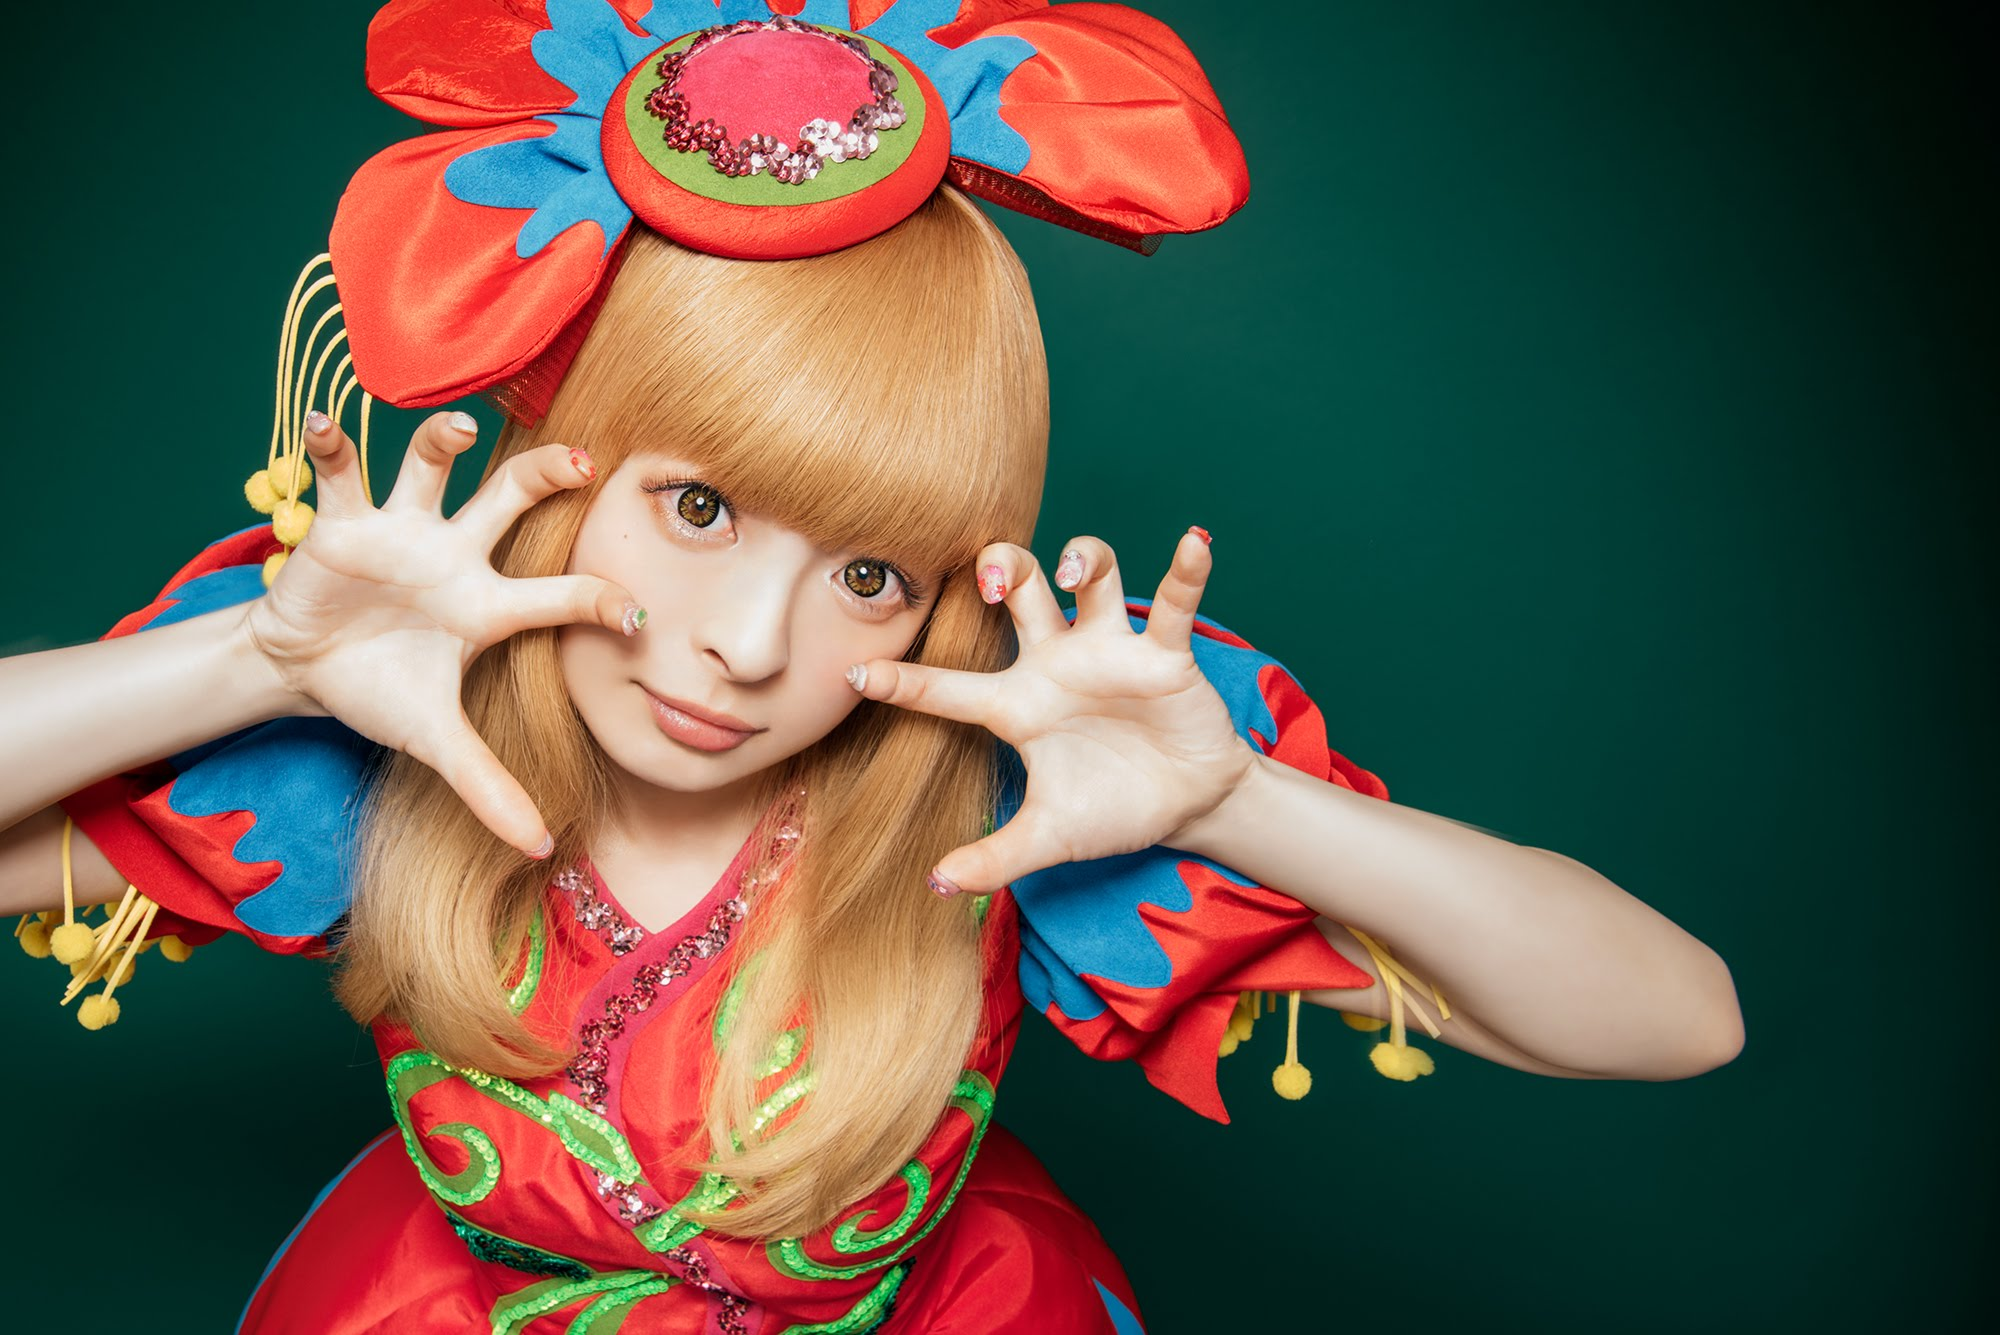 RMMS-Kyary-Pamyu-Pamyu-5ive-Years-Monster-Tour-NYC-A